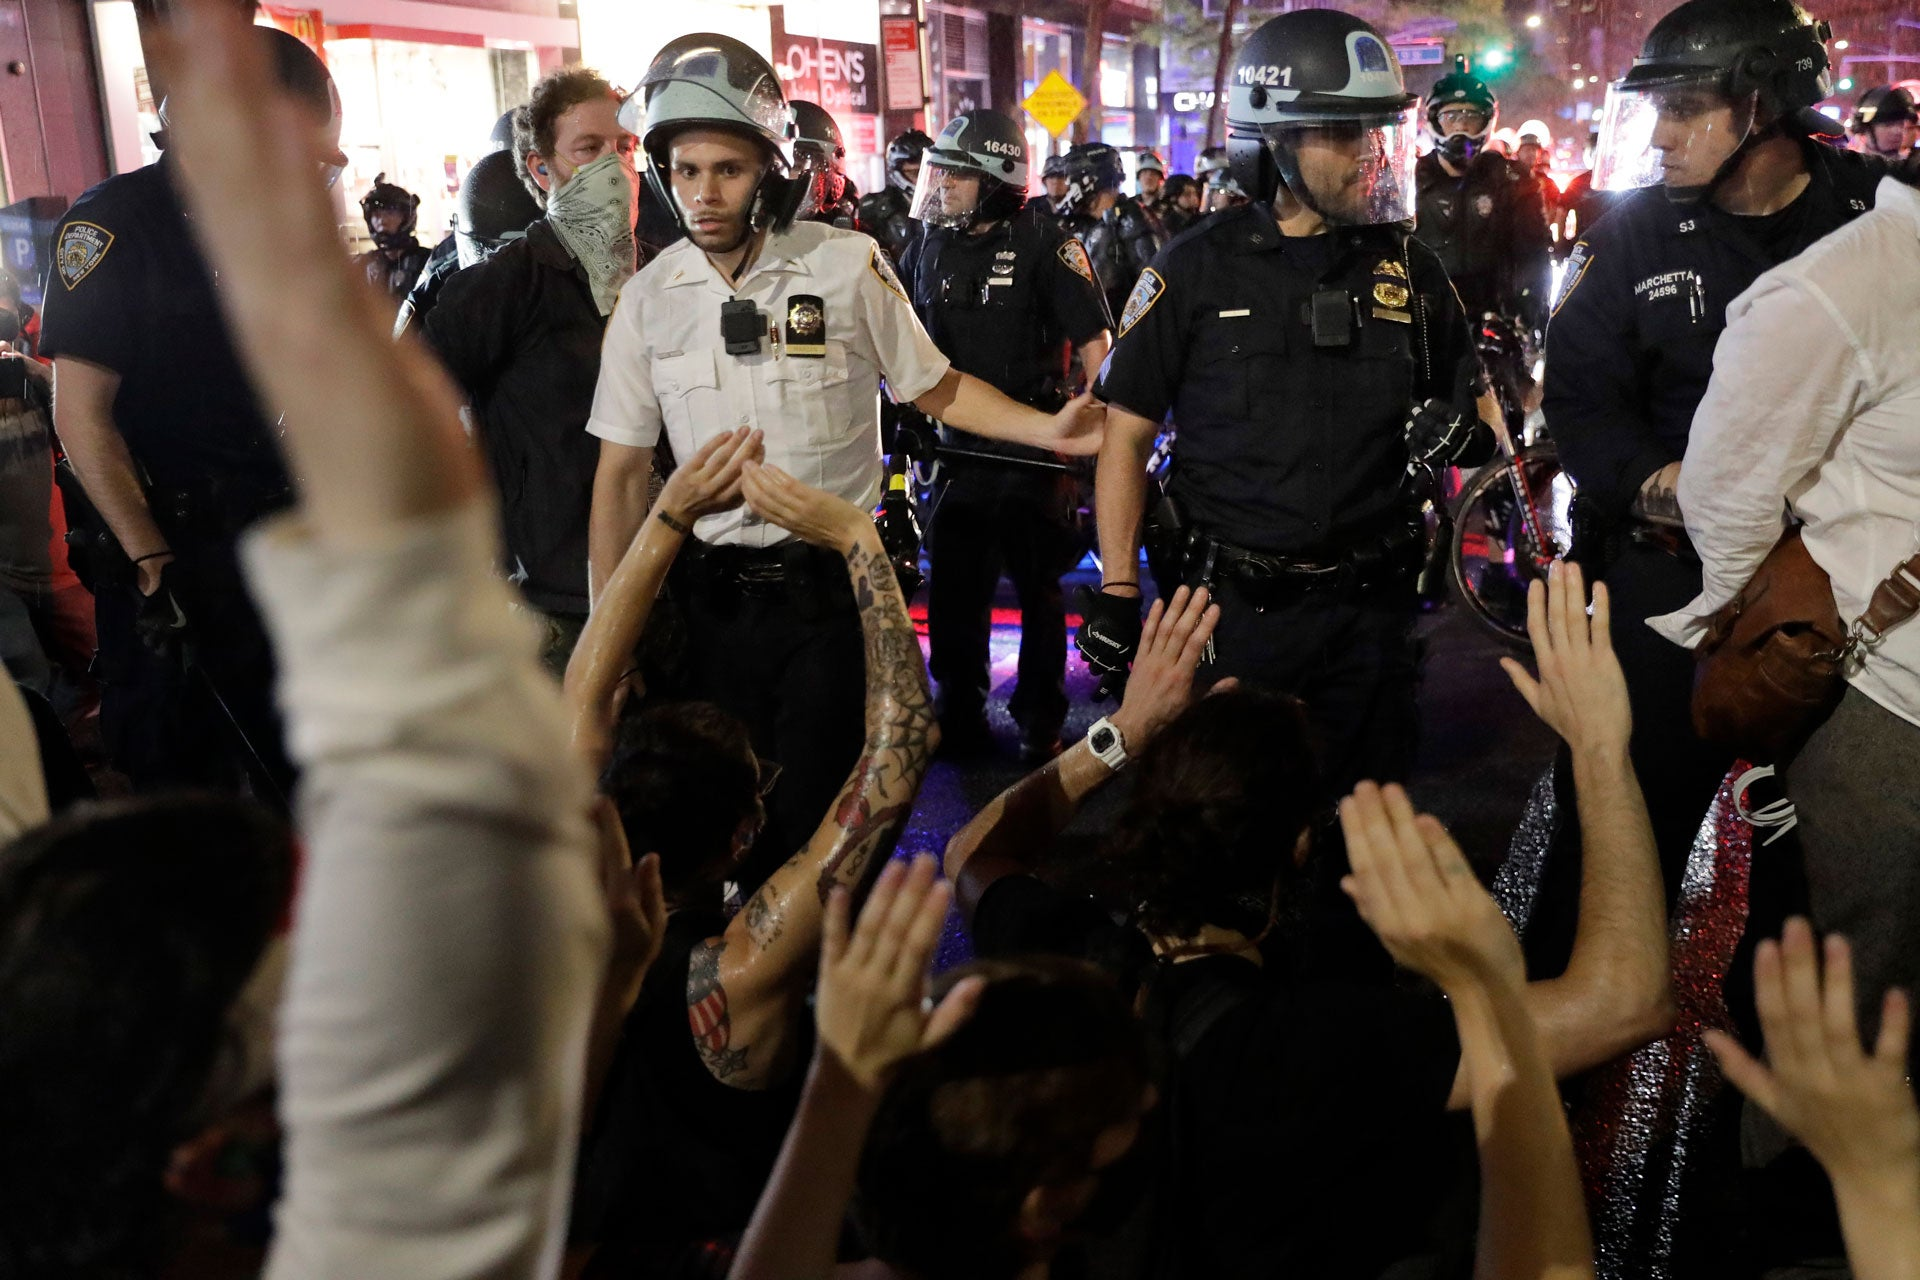 Police arrest protesters as they march through the streets of Manhattan, New York, Wednesday, June 3, 2020.